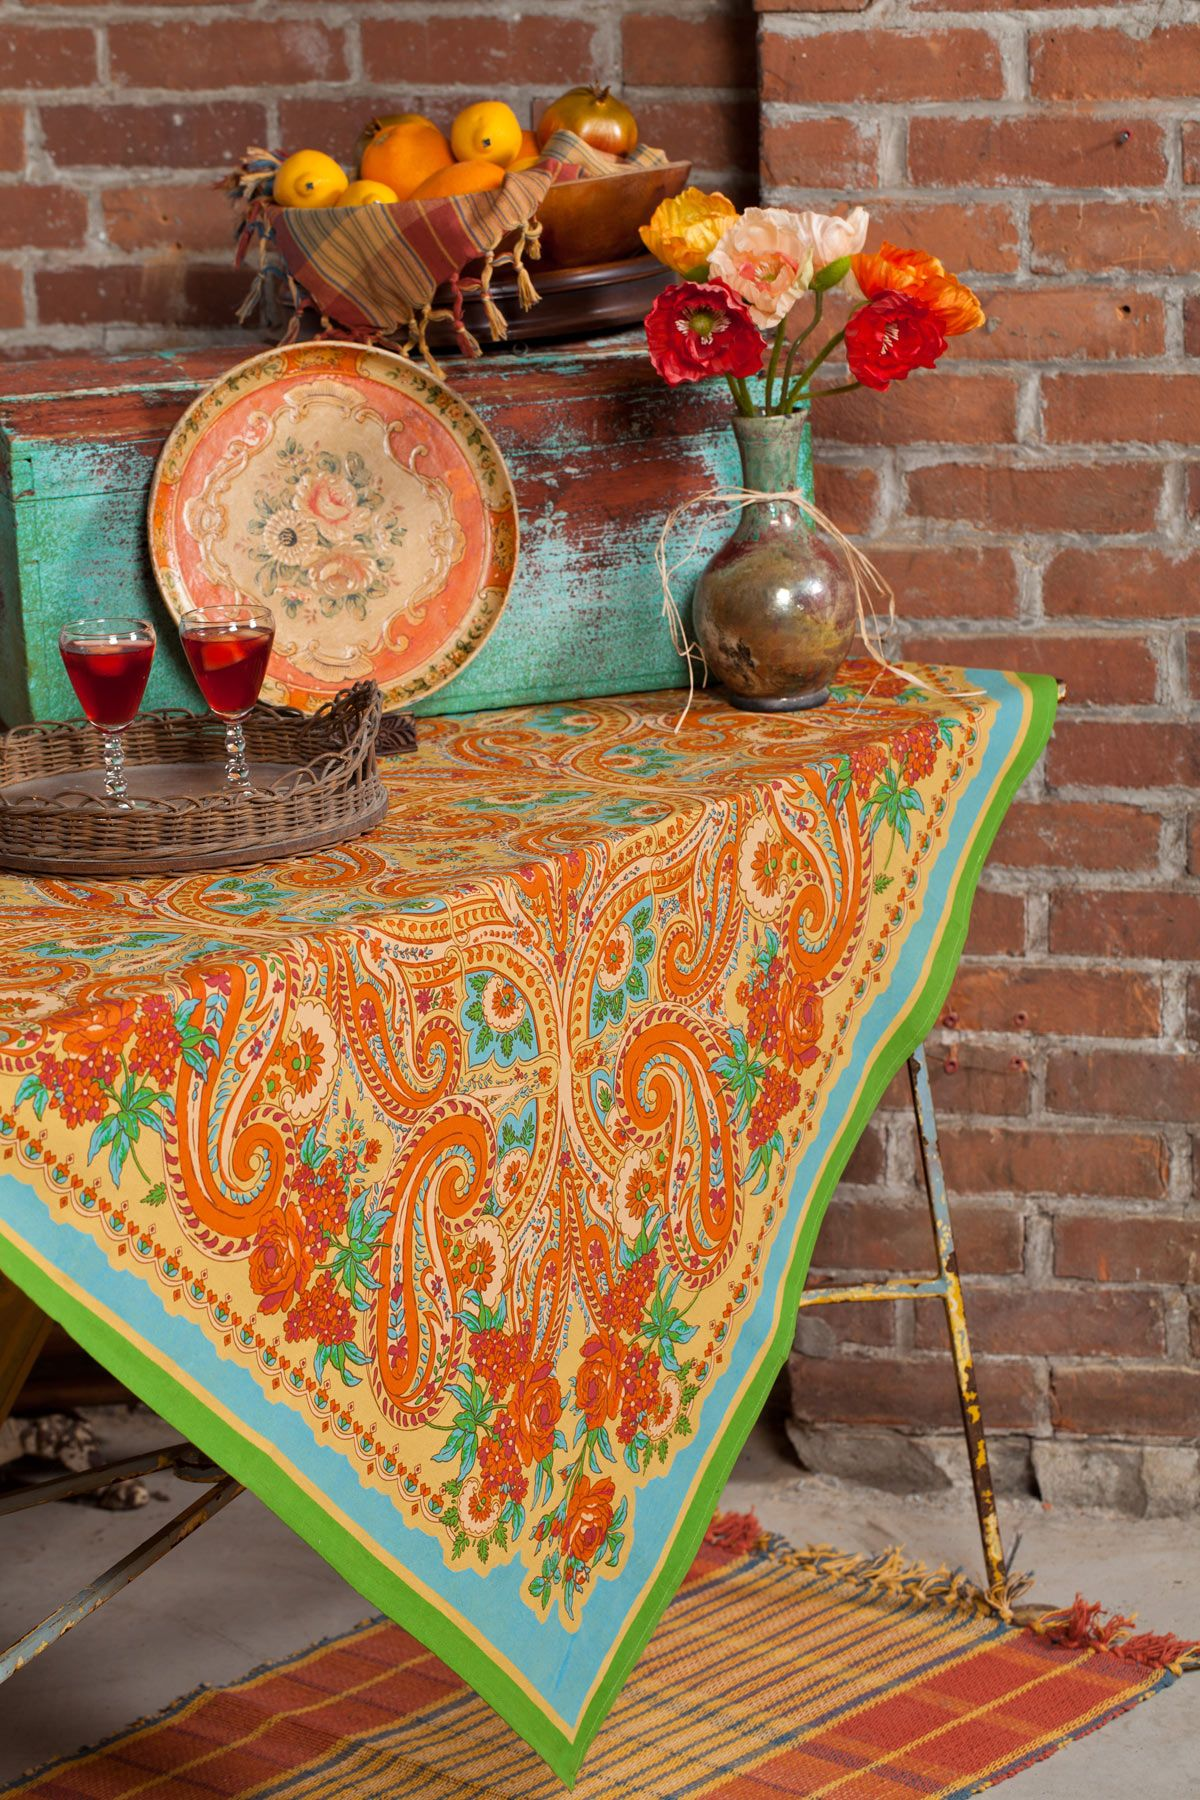 Paris paisley tablecloth table linens kitchen tablecloths fabulous new signature april cornell clothing kids wear and linens for a beautiful home kitchen tableclothsapril workwithnaturefo